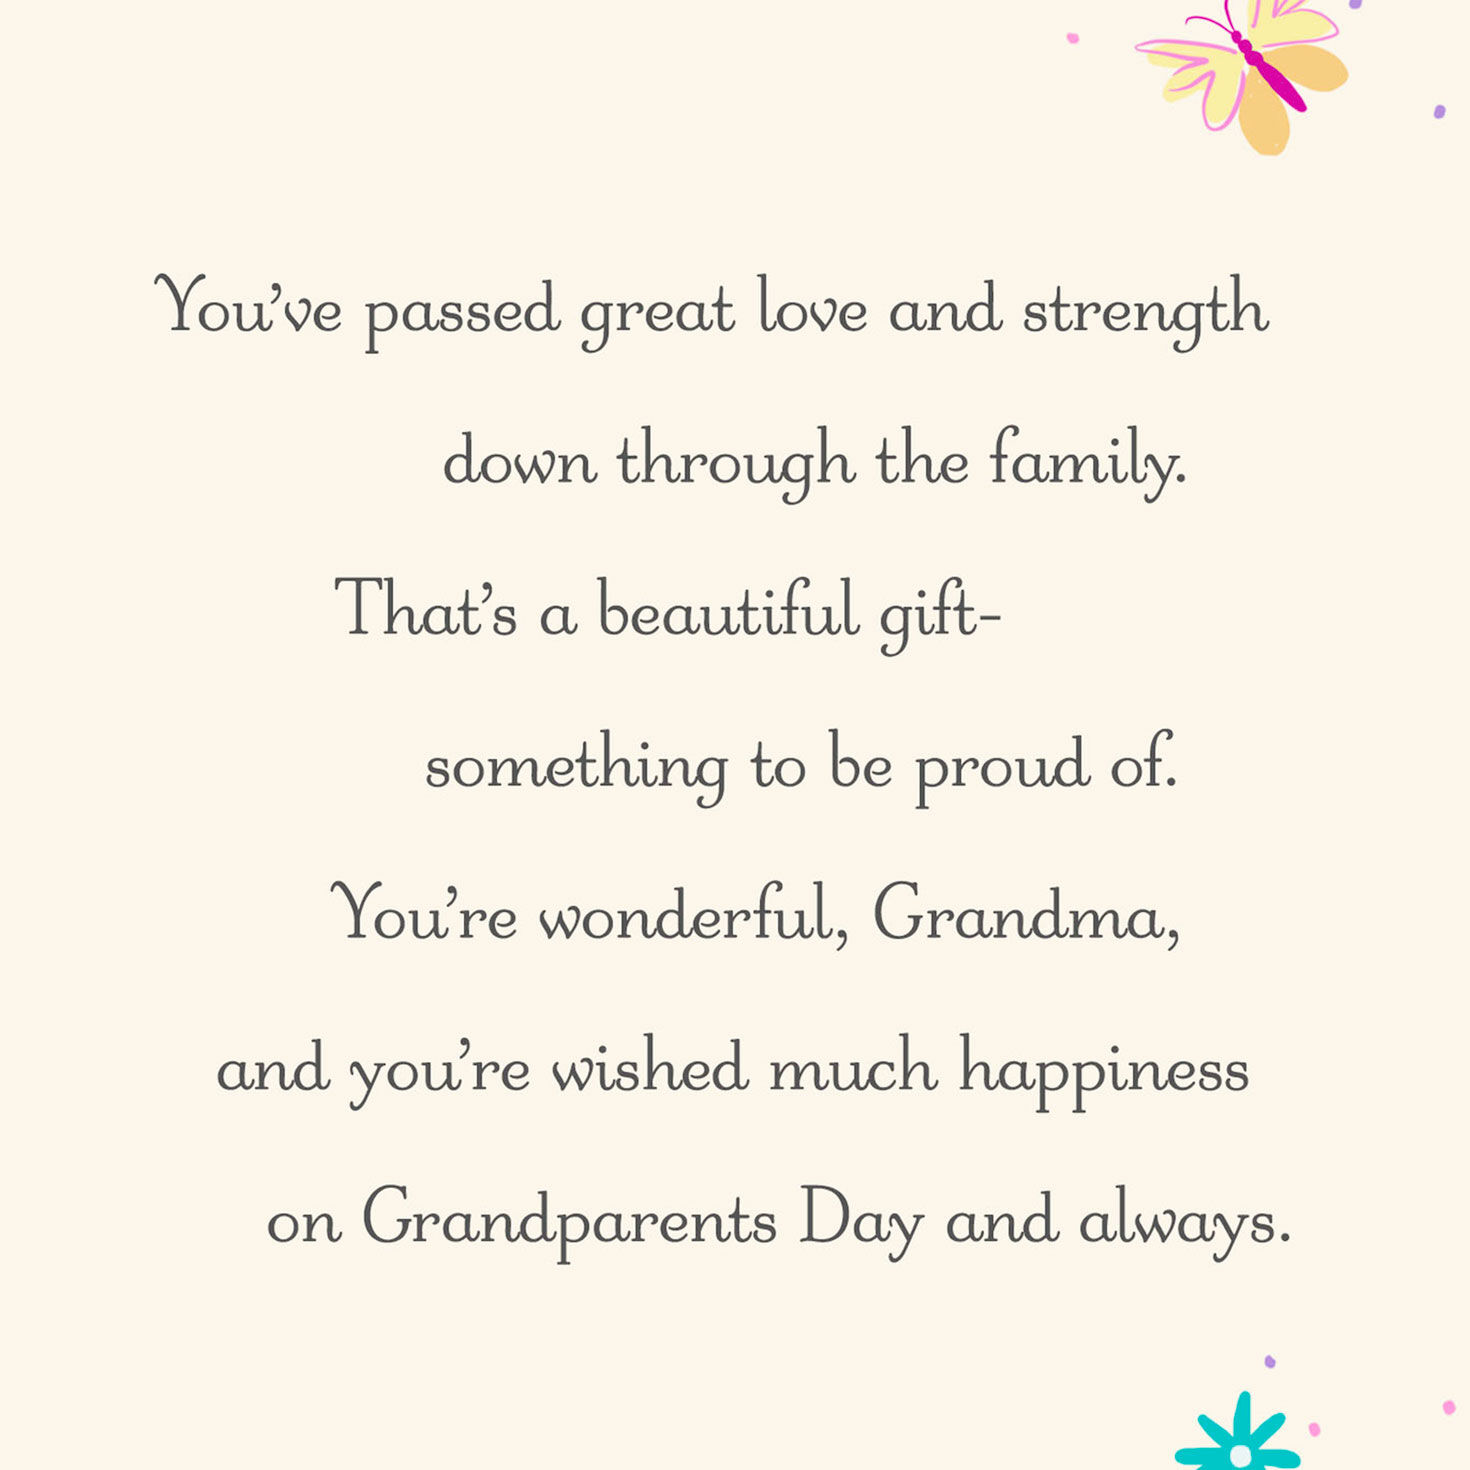 photo about Grandparents Day Cards Printable referred to as Grandparents Working day Playing cards Hallmark